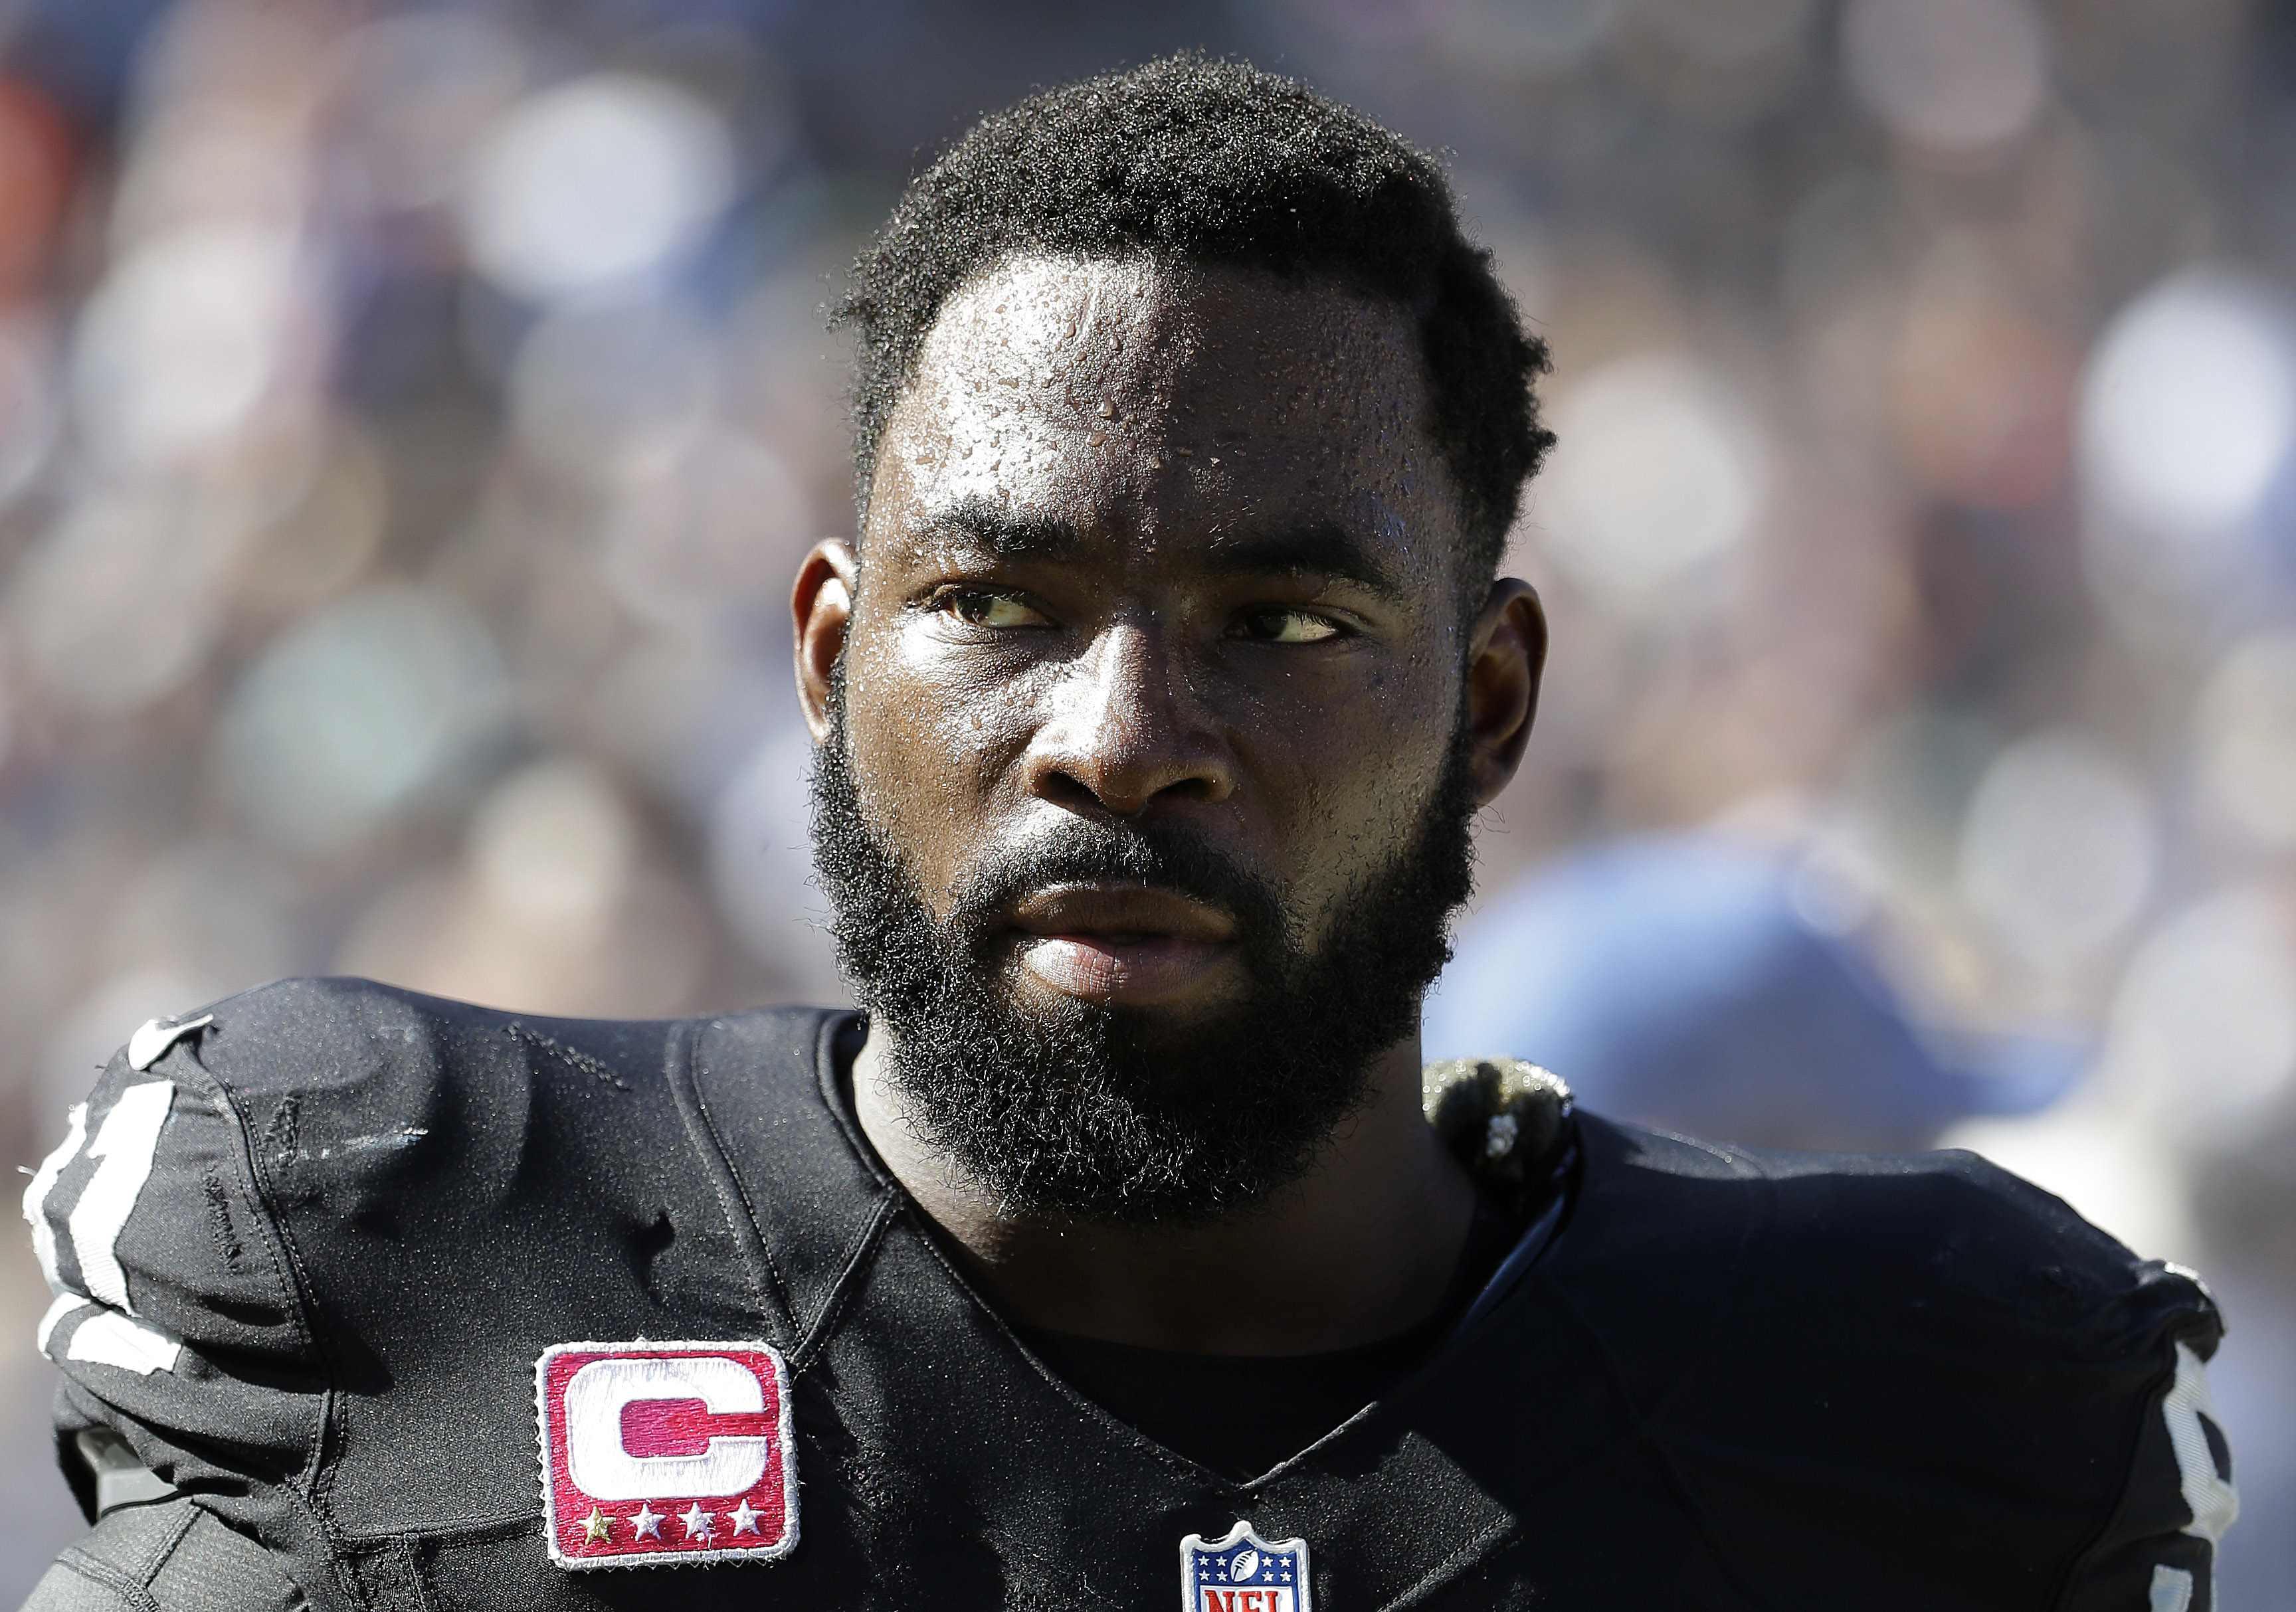 Oakland Raiders defensive end Justin Tuck (91) against the Denver Broncos during an NFL football game in Oakland, Calif., Sunday, Oct. 11, 2015. (AP Photo/Marcio Jose Sanchez)